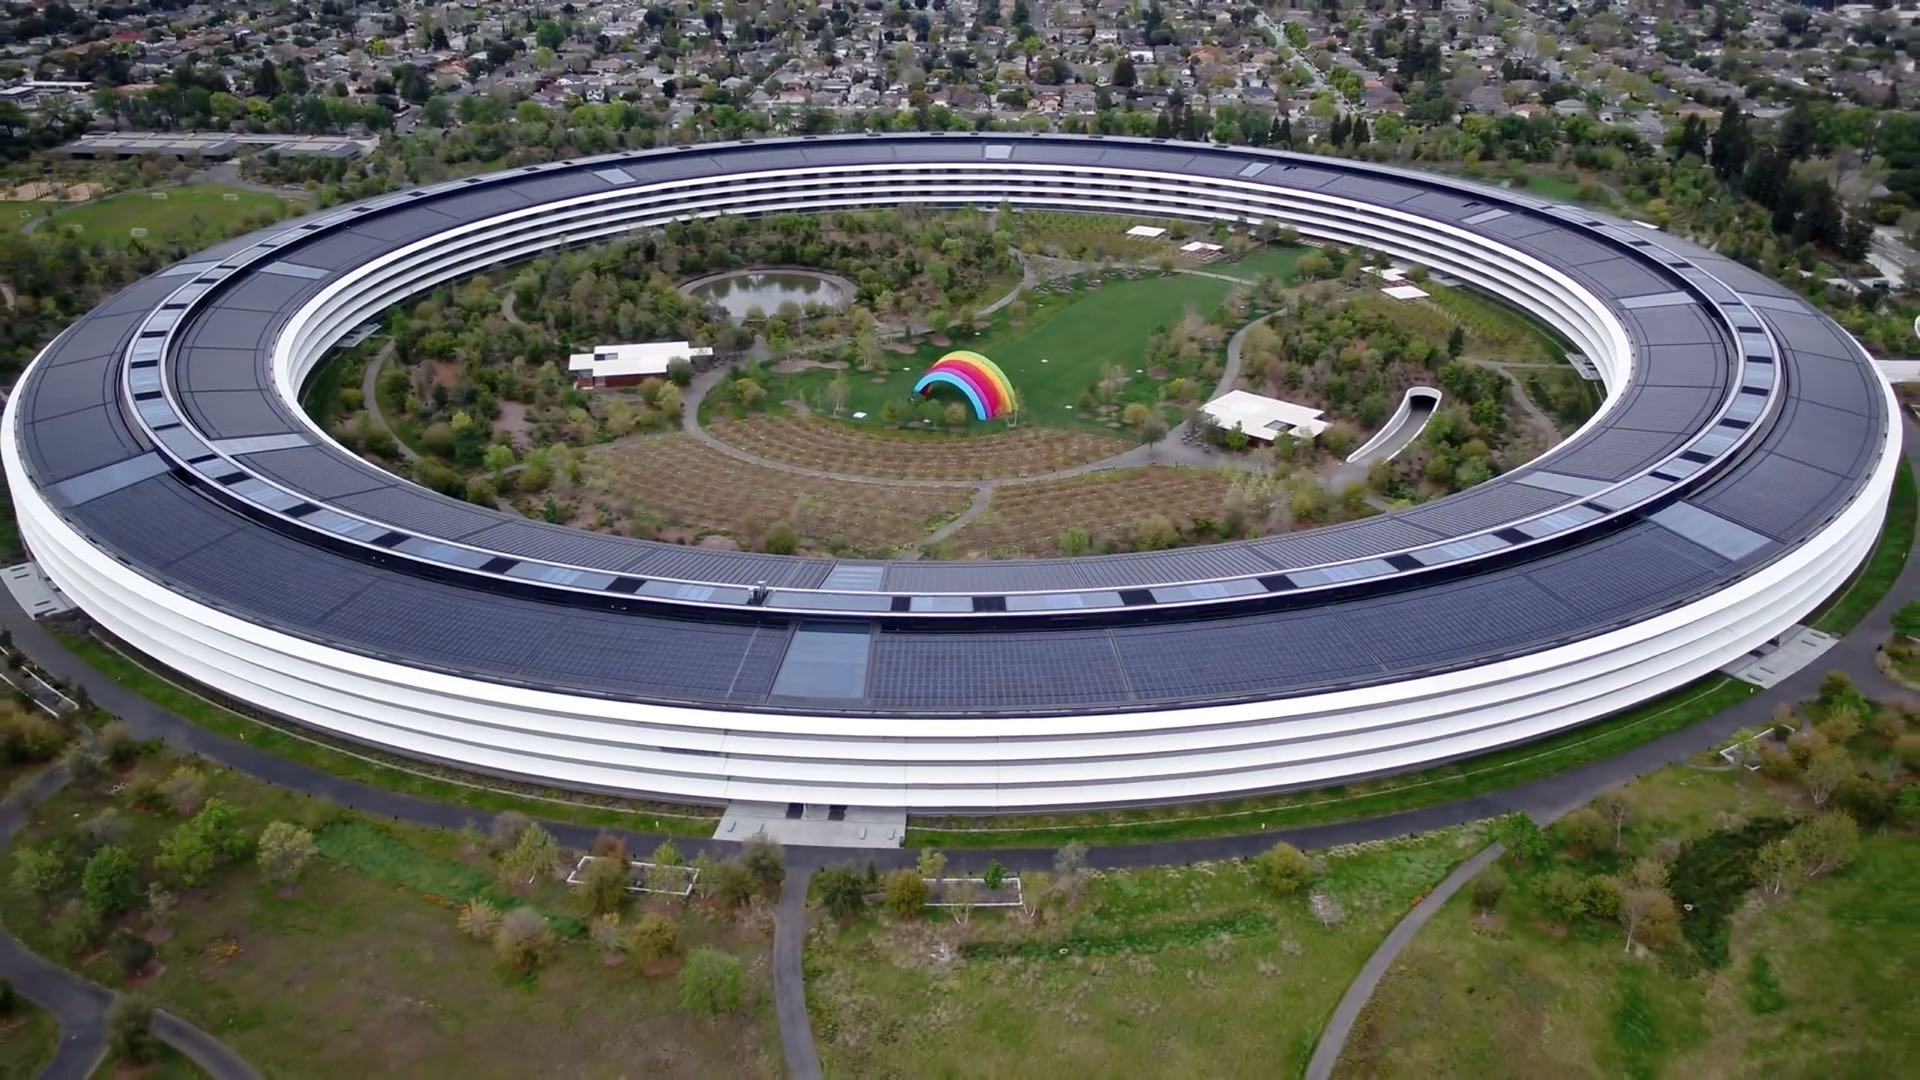 An aerial view of the Apple Park headquarters